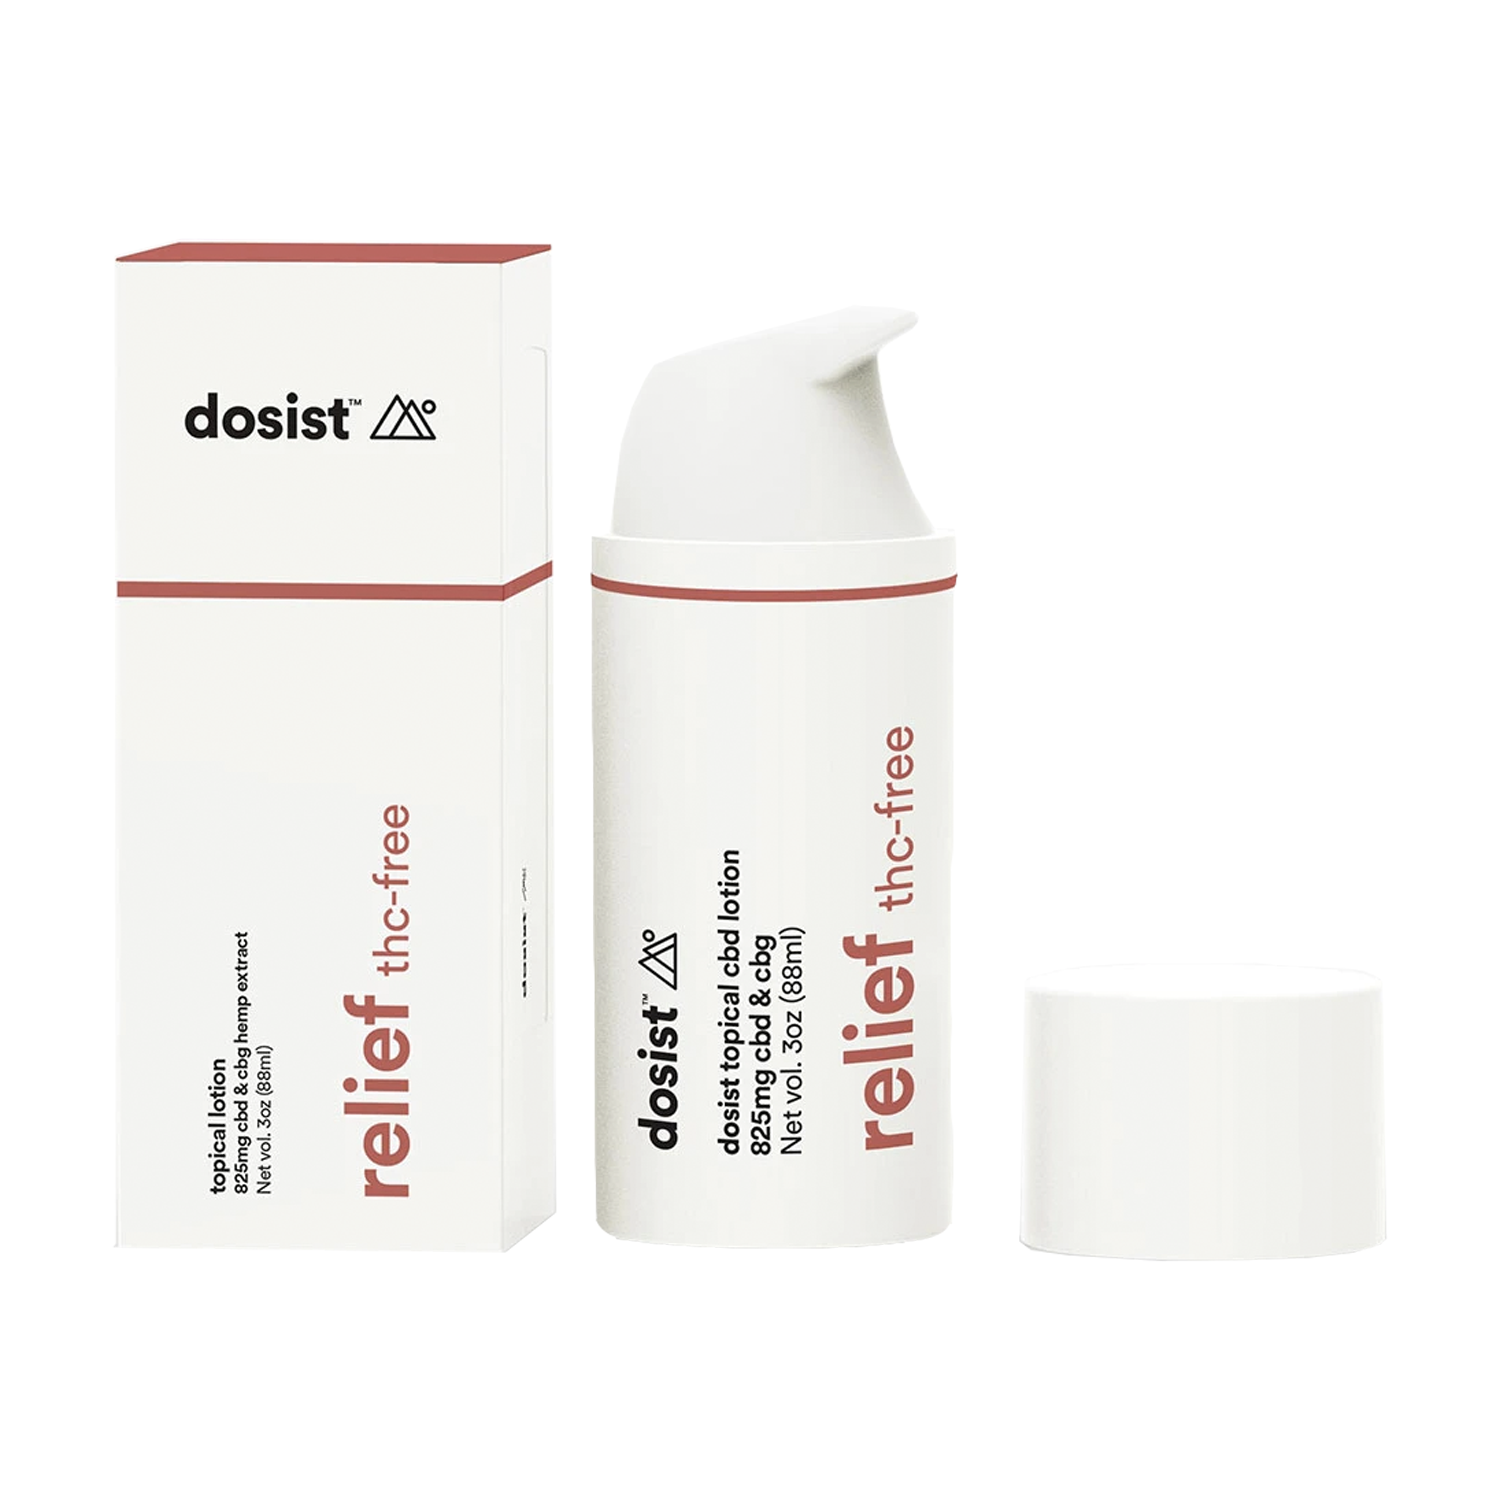 Dosist Topicals | Relief Lotion 825mg CBD:CBG - Isolate